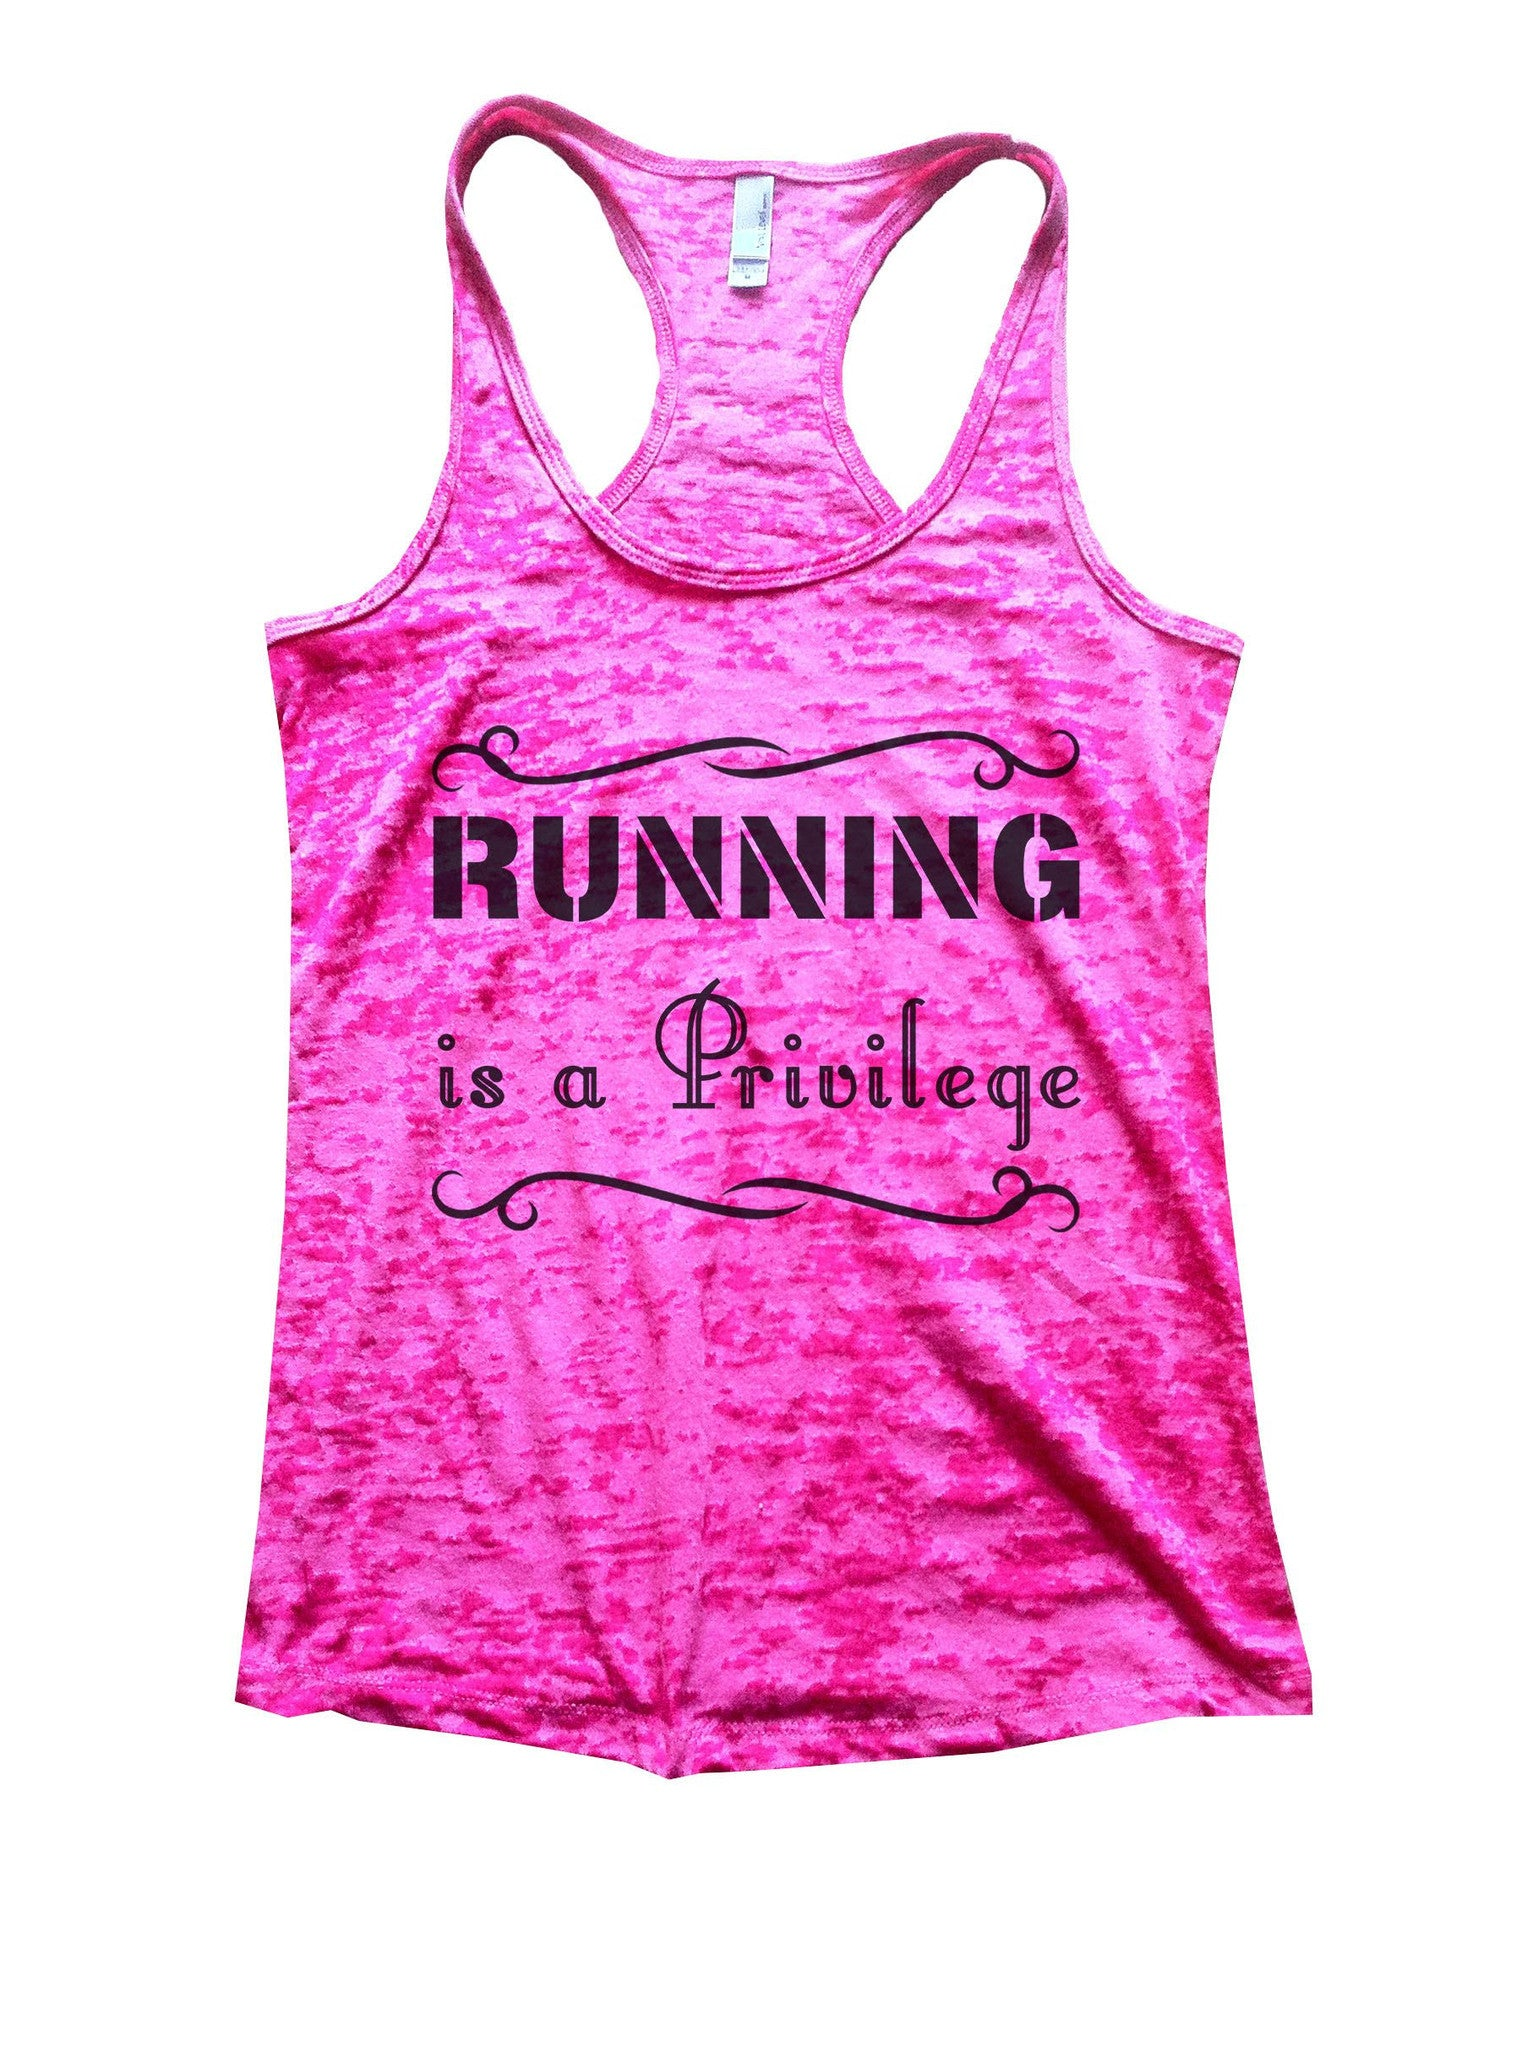 Running Is A Privilege Burnout Tank Top By BurnoutTankTops.com - 885 - Funny Shirts Tank Tops Burnouts and Triblends  - 5